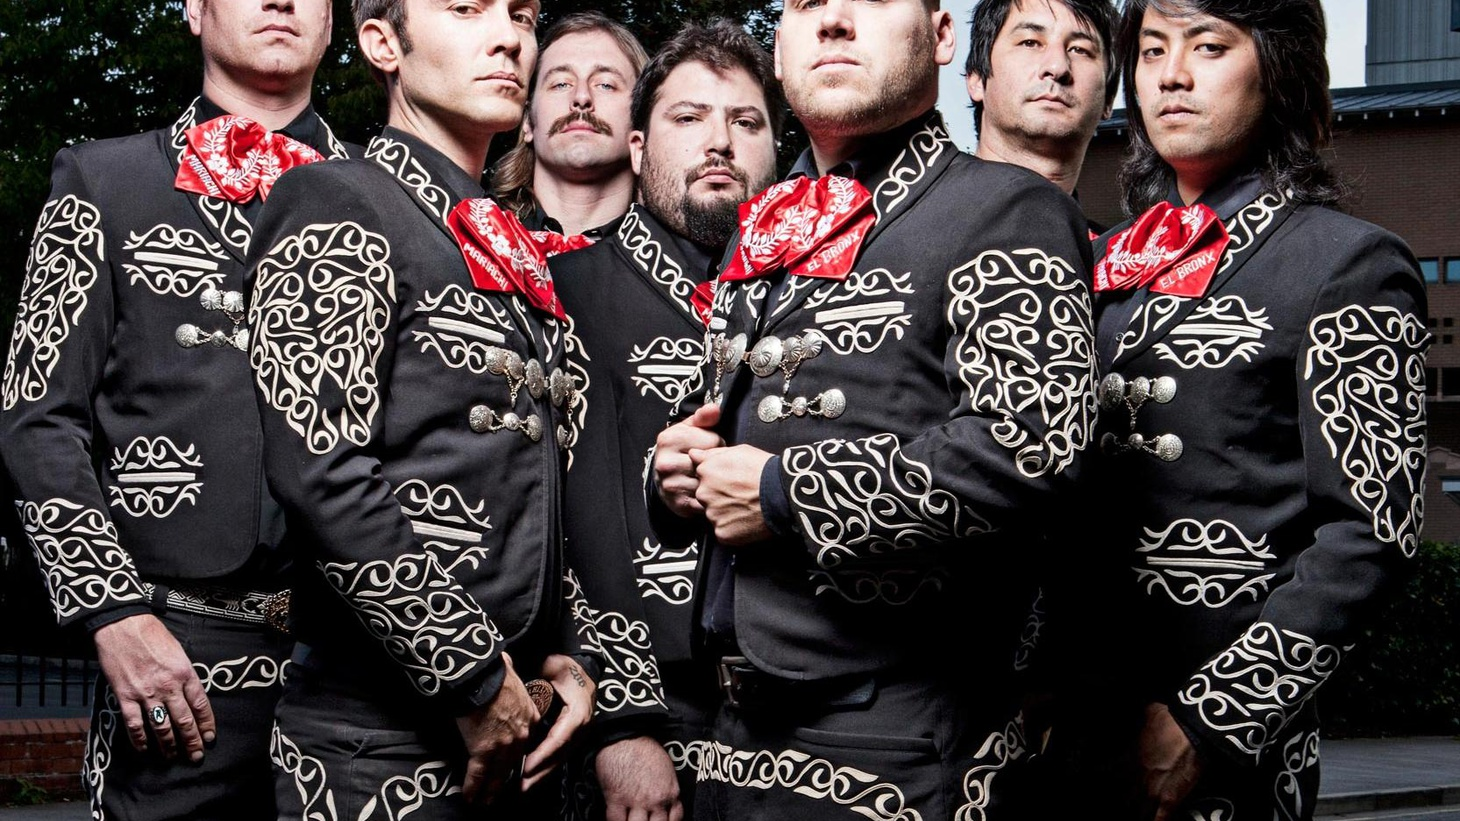 Mariachi El Bronx are sure to knock our socks off at KCRW's Masquerade Ball next weekend but first...